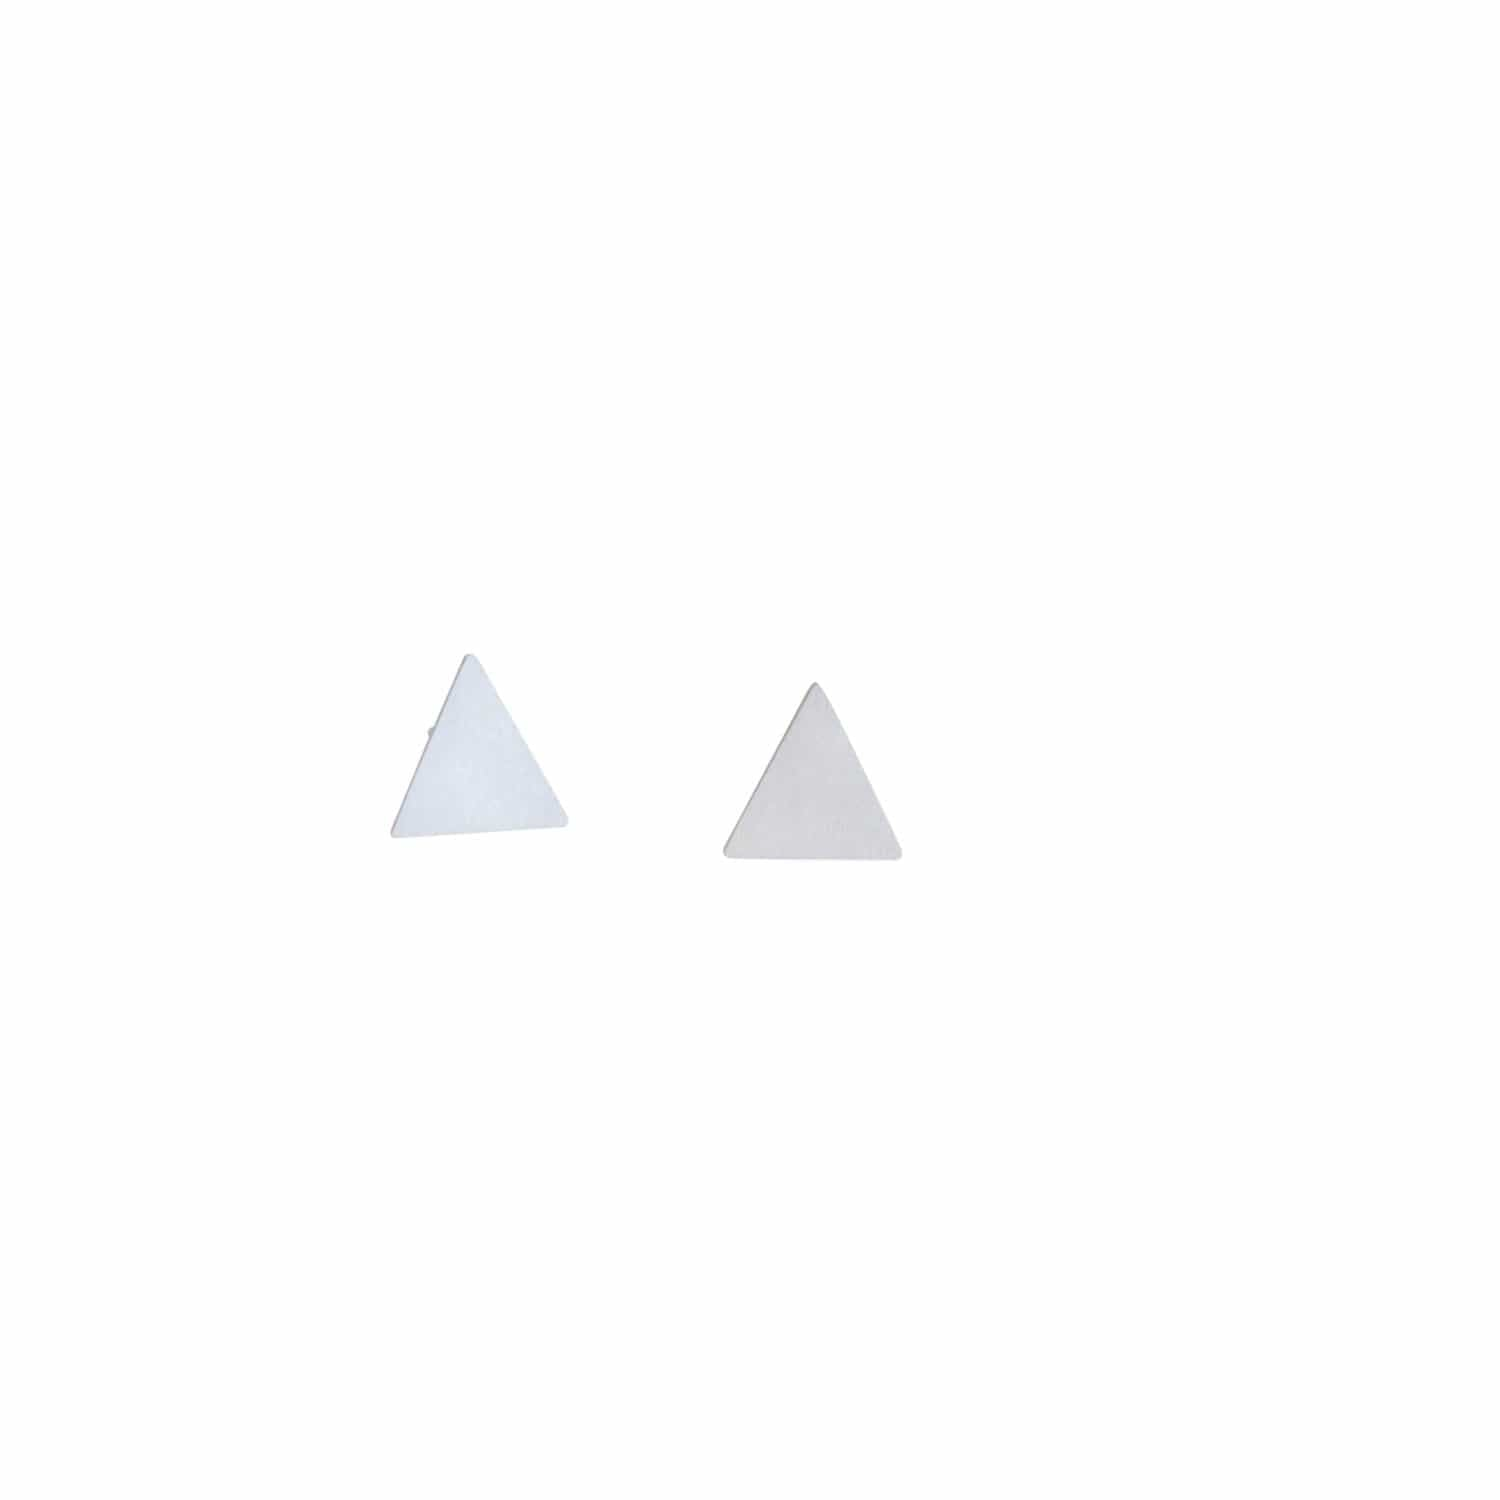 tothemetal Earrings Triangle Silver Stud Earrings